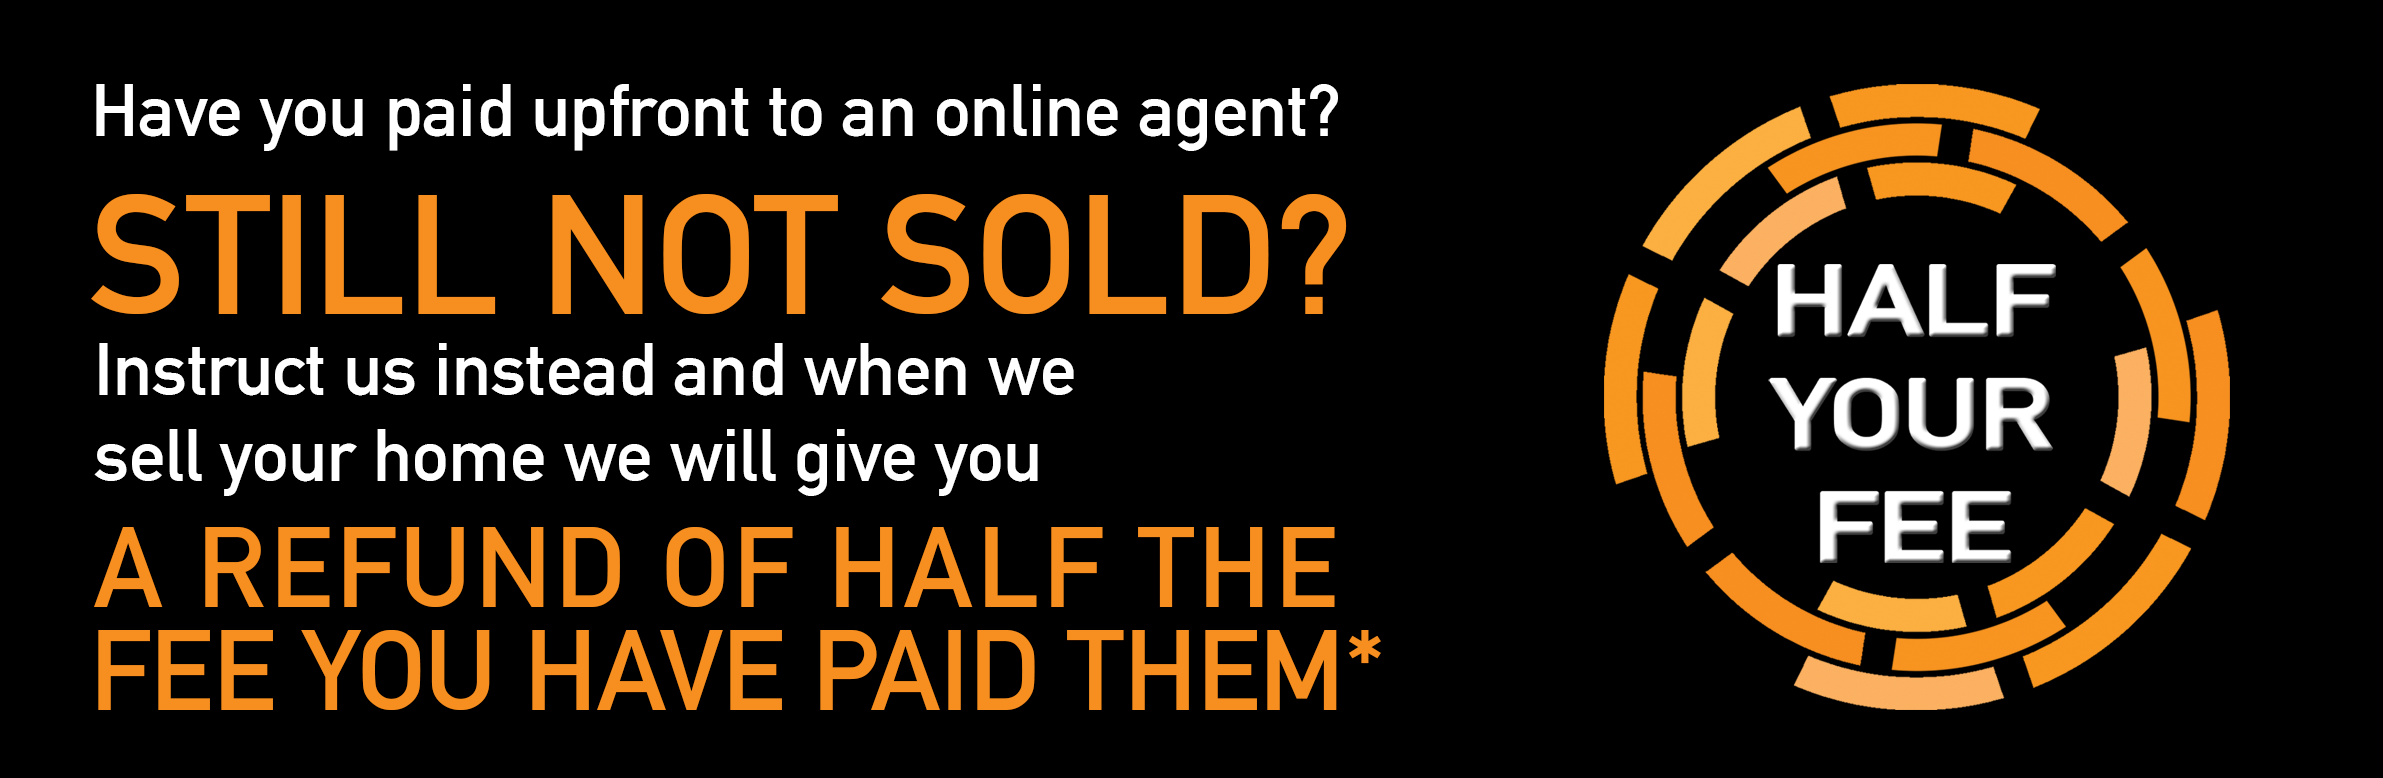 REFUND OF UPTO HALF THE FEE YOU HAVE PAID TO AN ONLINE AGENT!